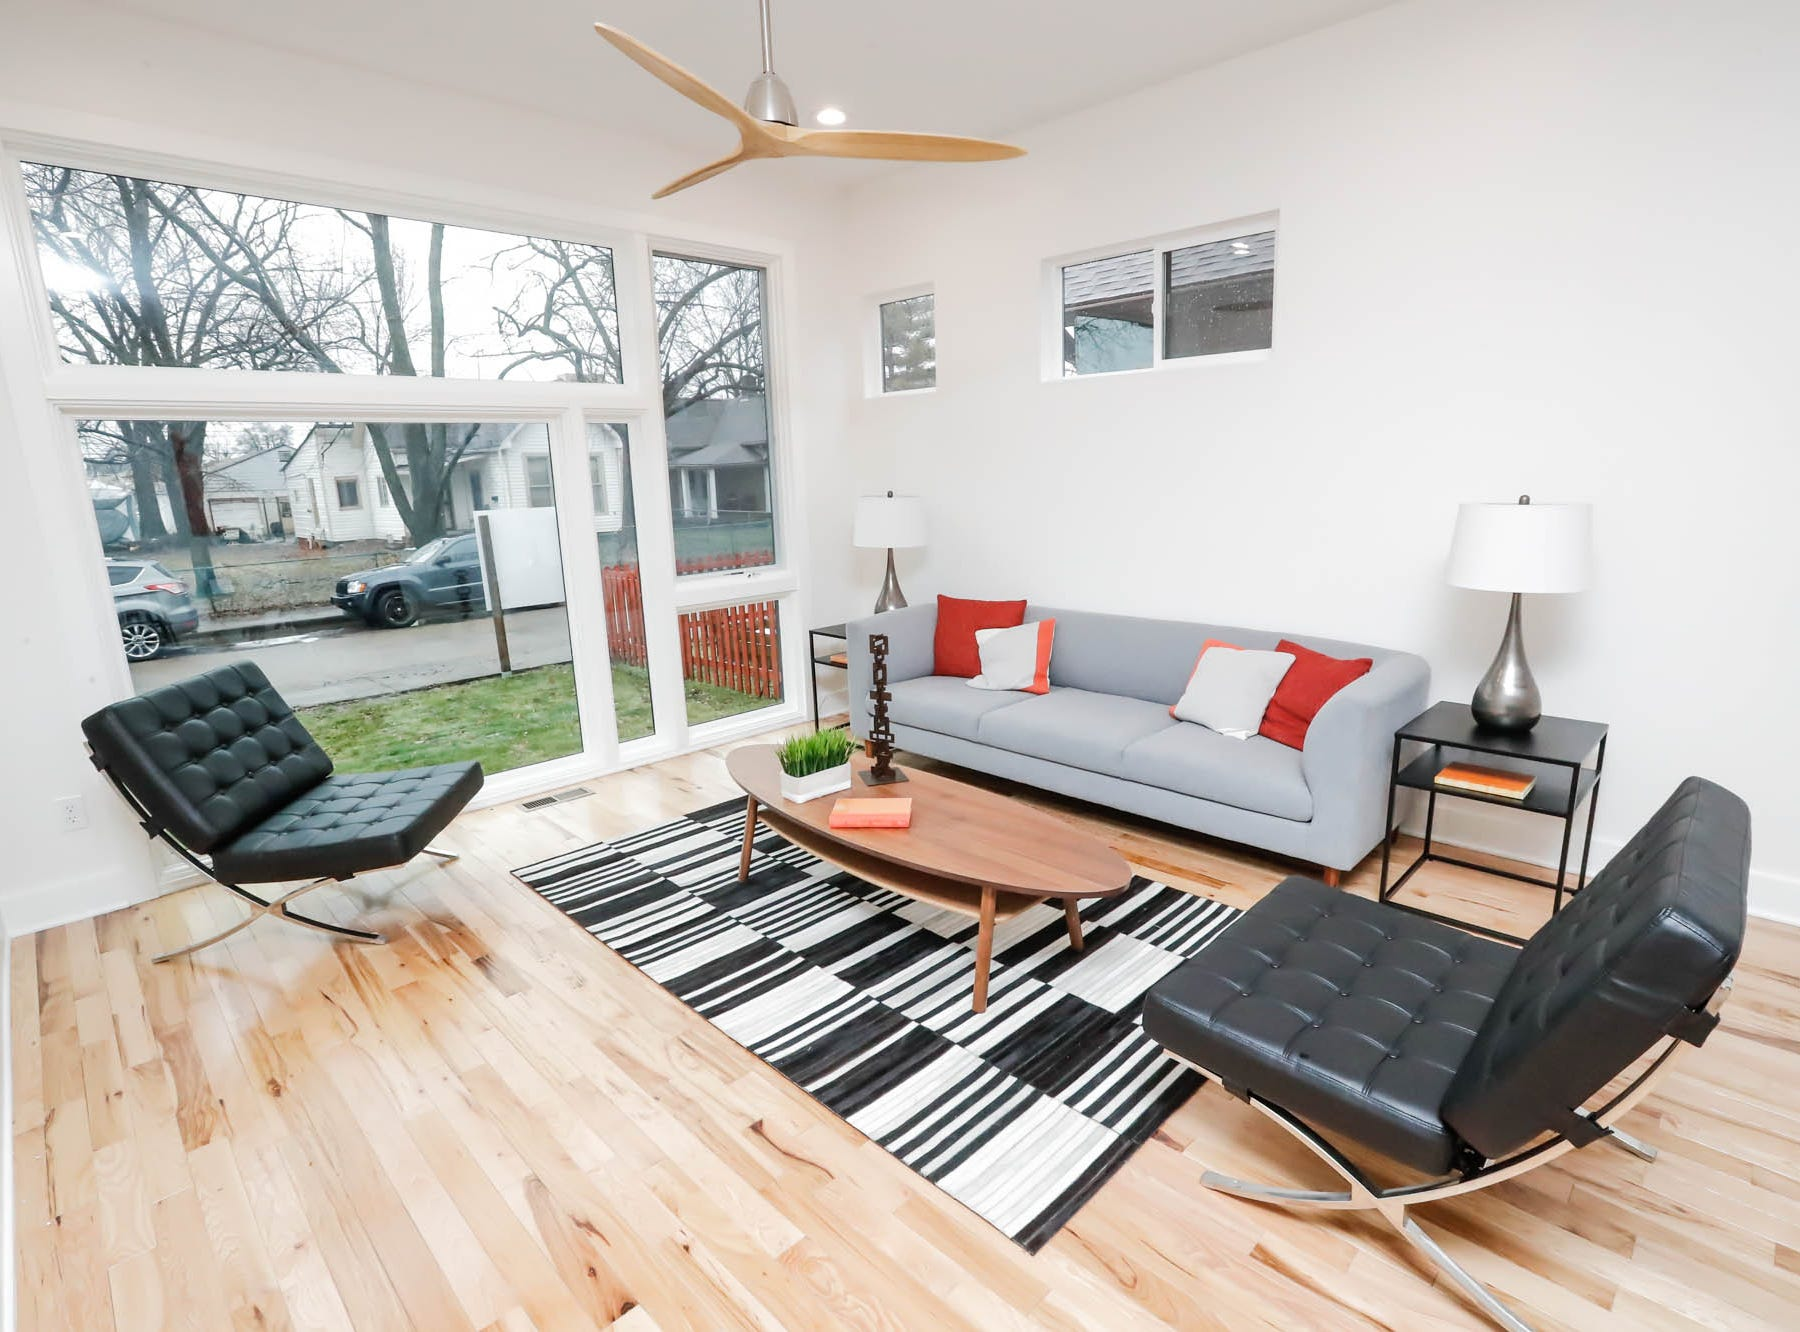 A newly built modern architectural home up for sale at 1134 Woodlawn Ave., Indianapolis, Ind., 46203, in the heart of the historic Fountain Square neighborhood, features large windows to allow in the maximum amount of light, on Wednesday, January 23, 2019. The three-story home, which features 2,030-square-feet and an open space concept tile and hardwood floors are priced at $479,900.